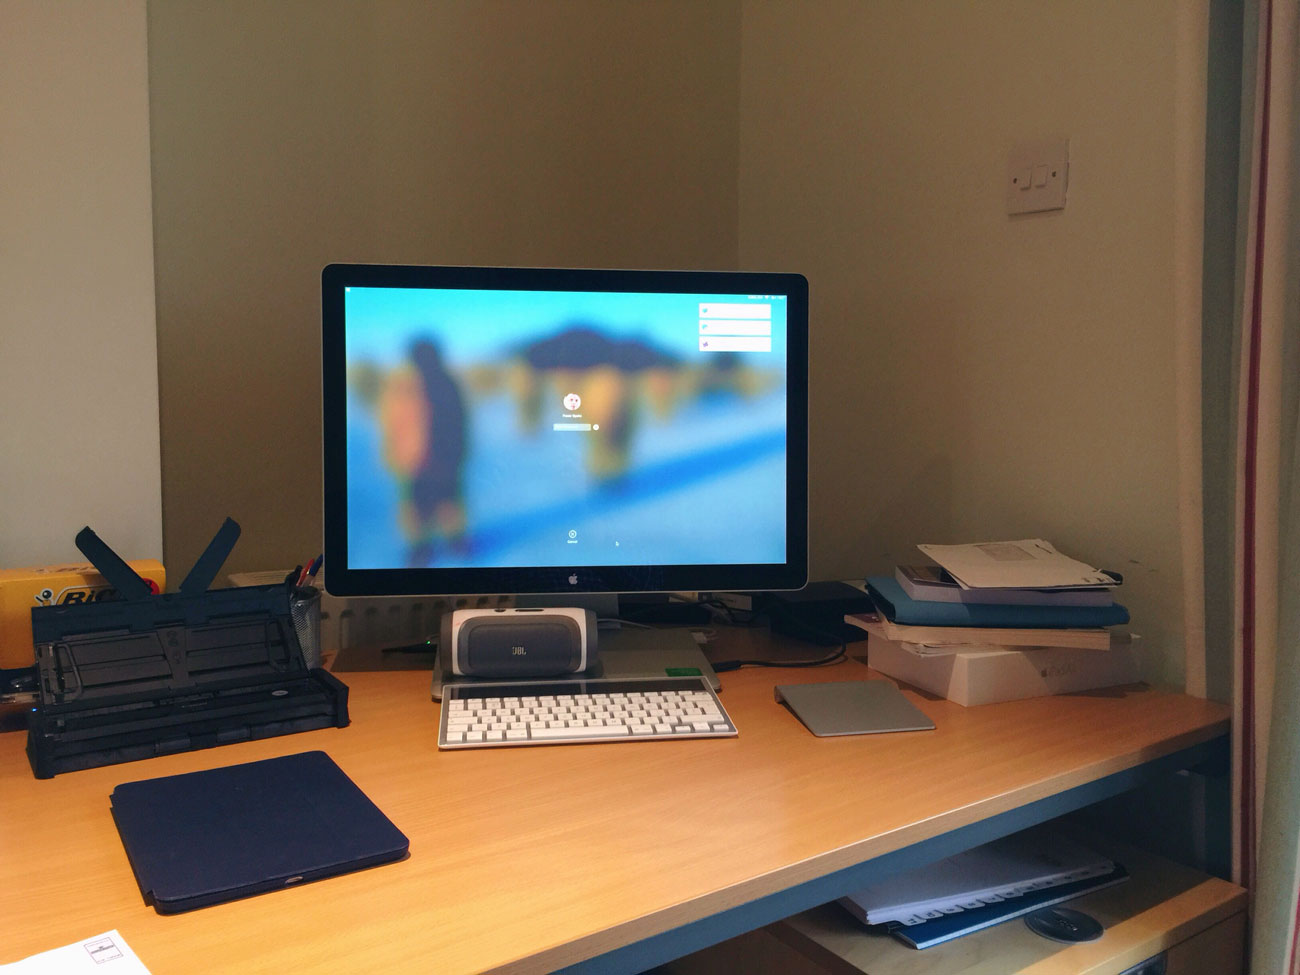 Fraser Speirs Macbook Air setup